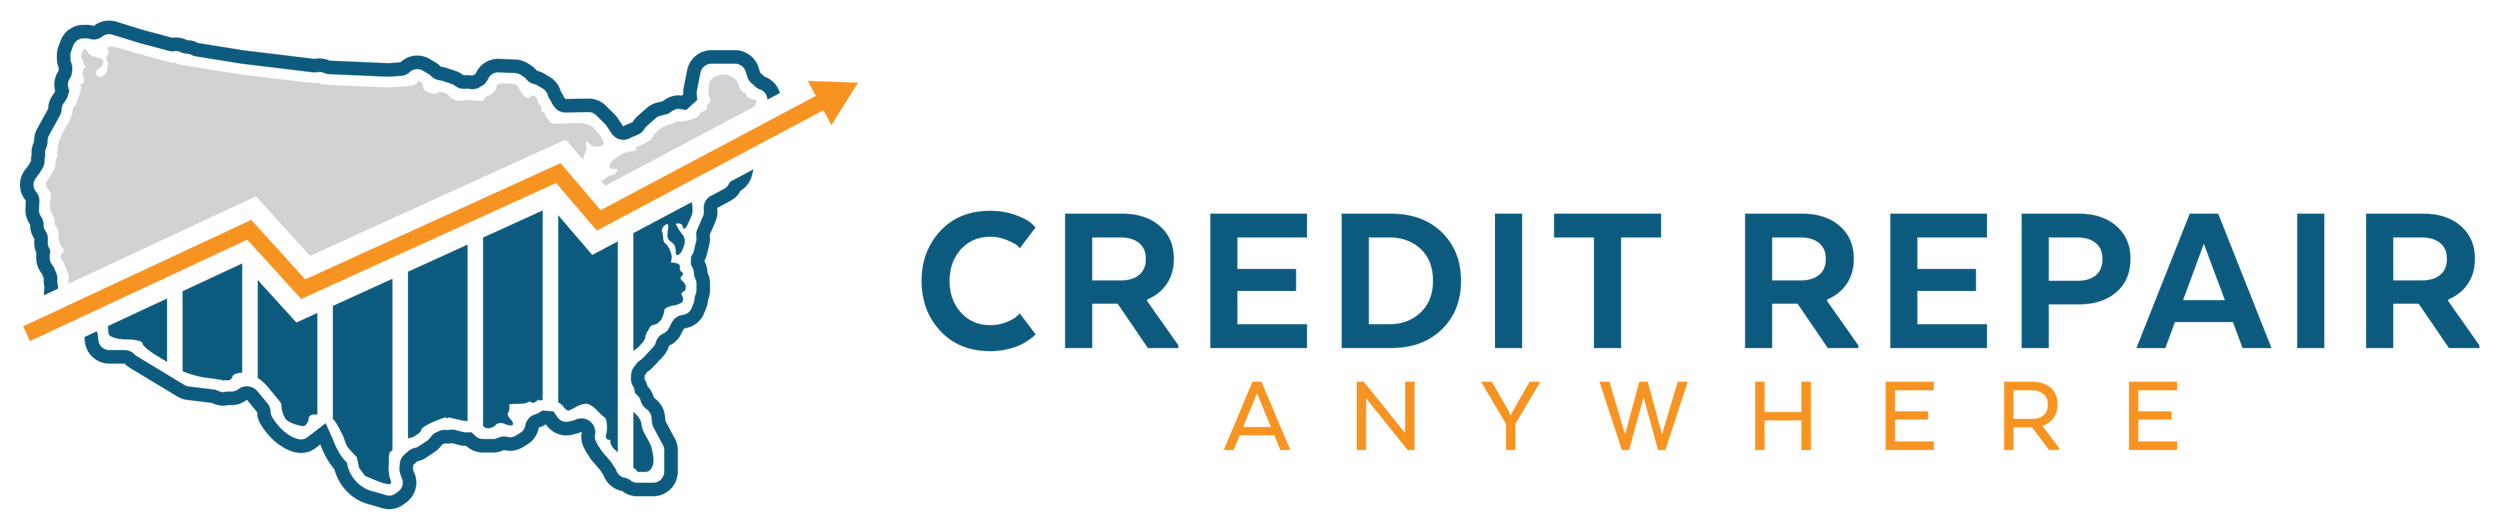 Credit Repair Anywhere